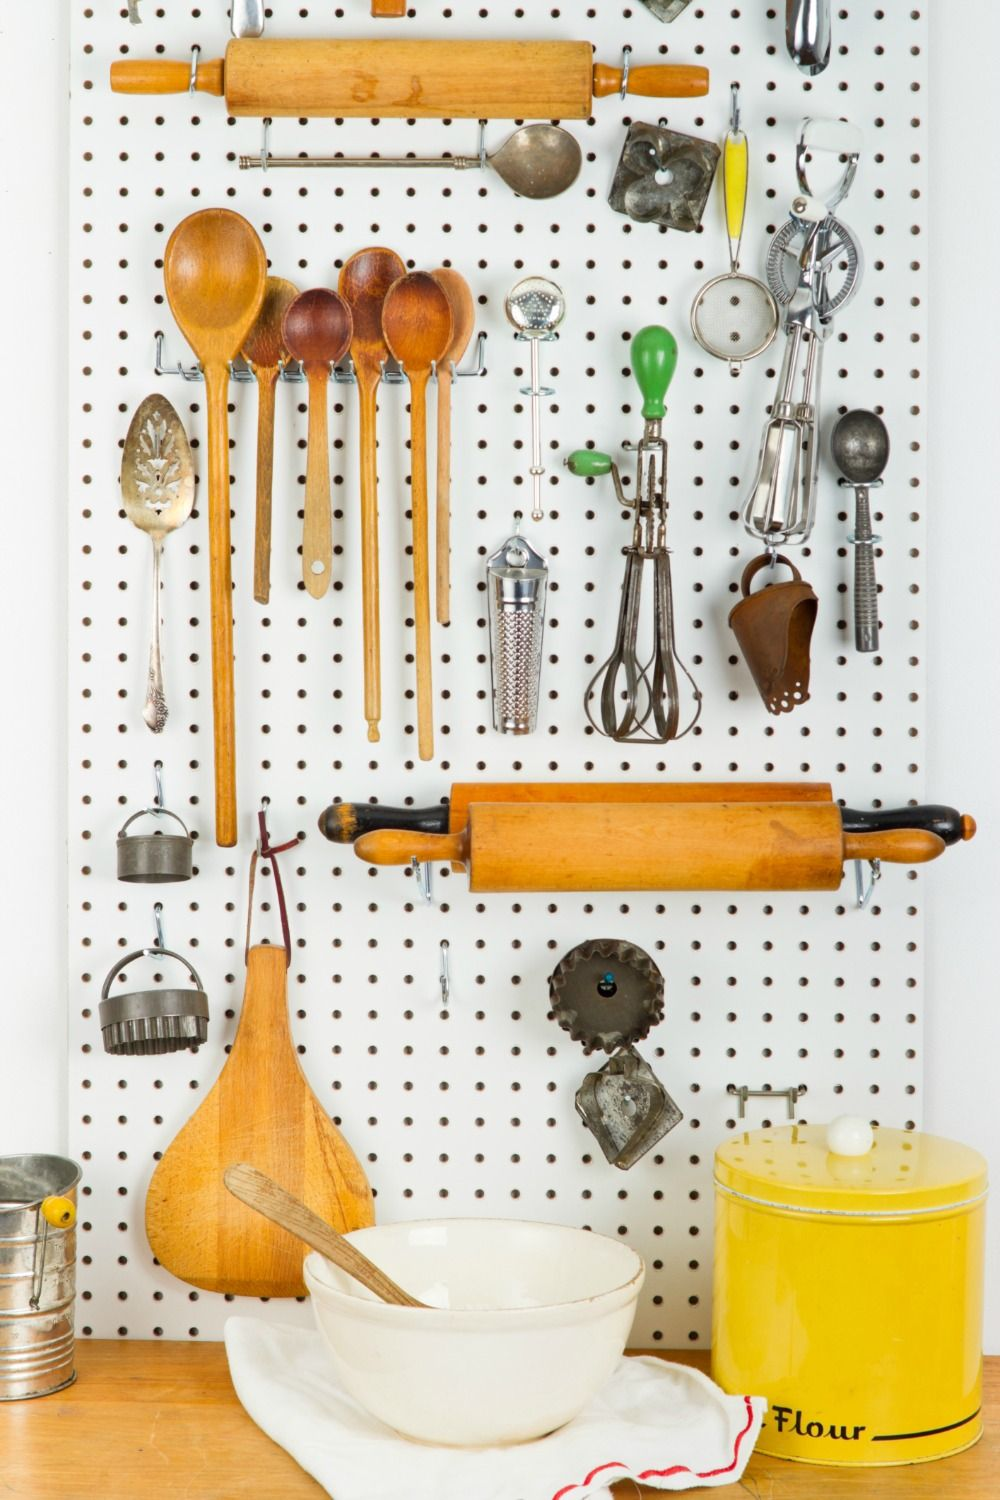 Use pegboards to organize kitchen tools